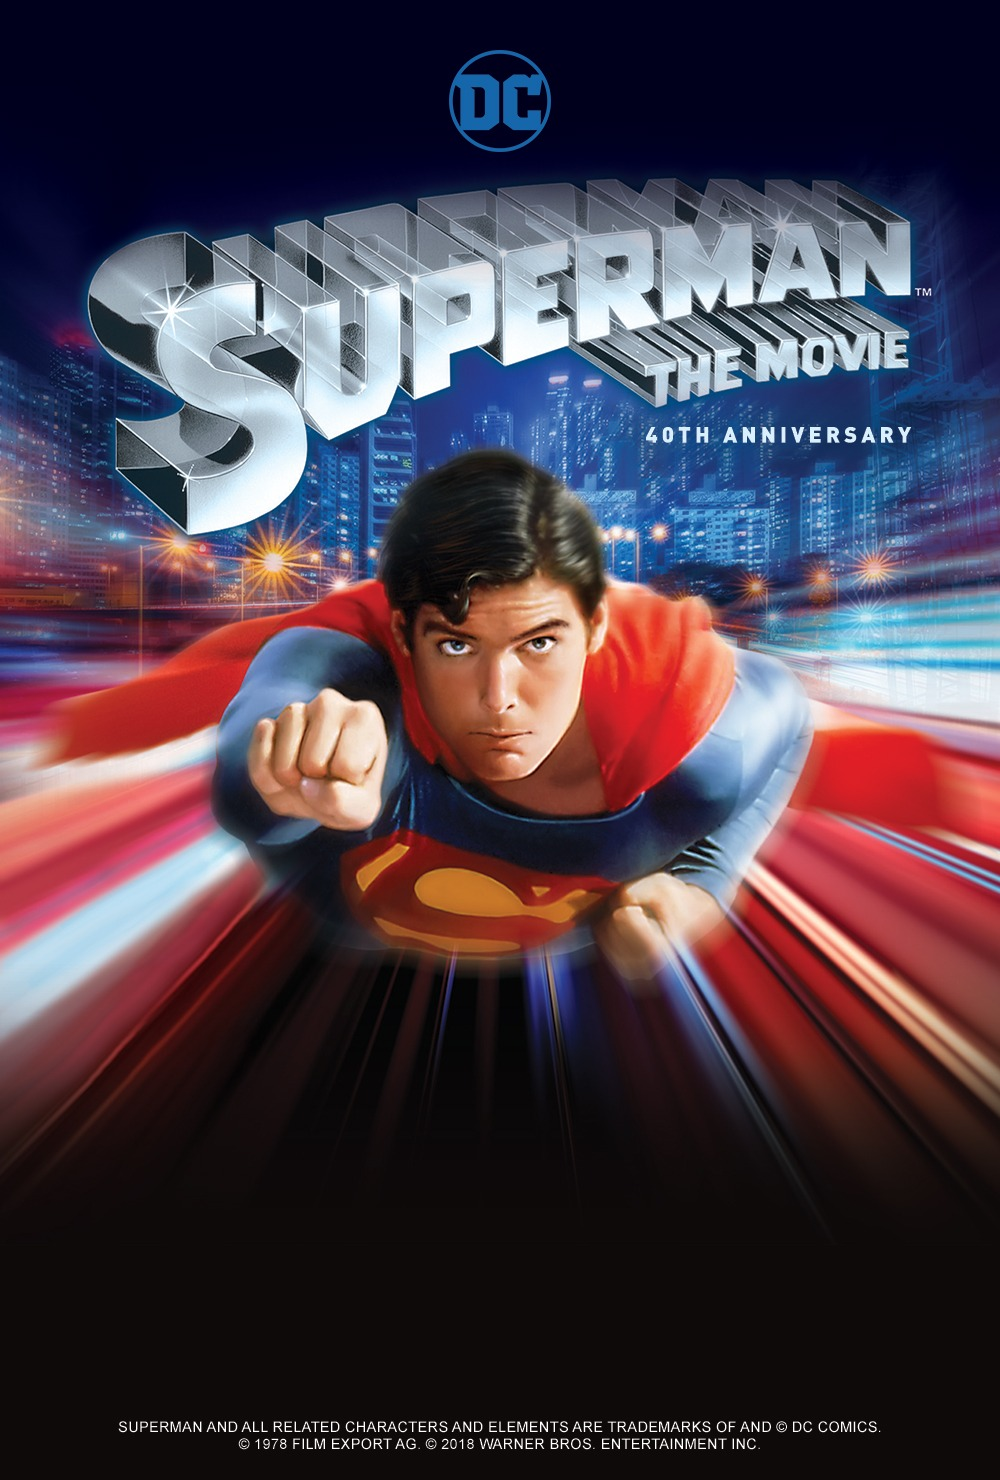 Superman: The Movie 40th Anniversity Celebrational Return To the Big Screen – A Fathom Event